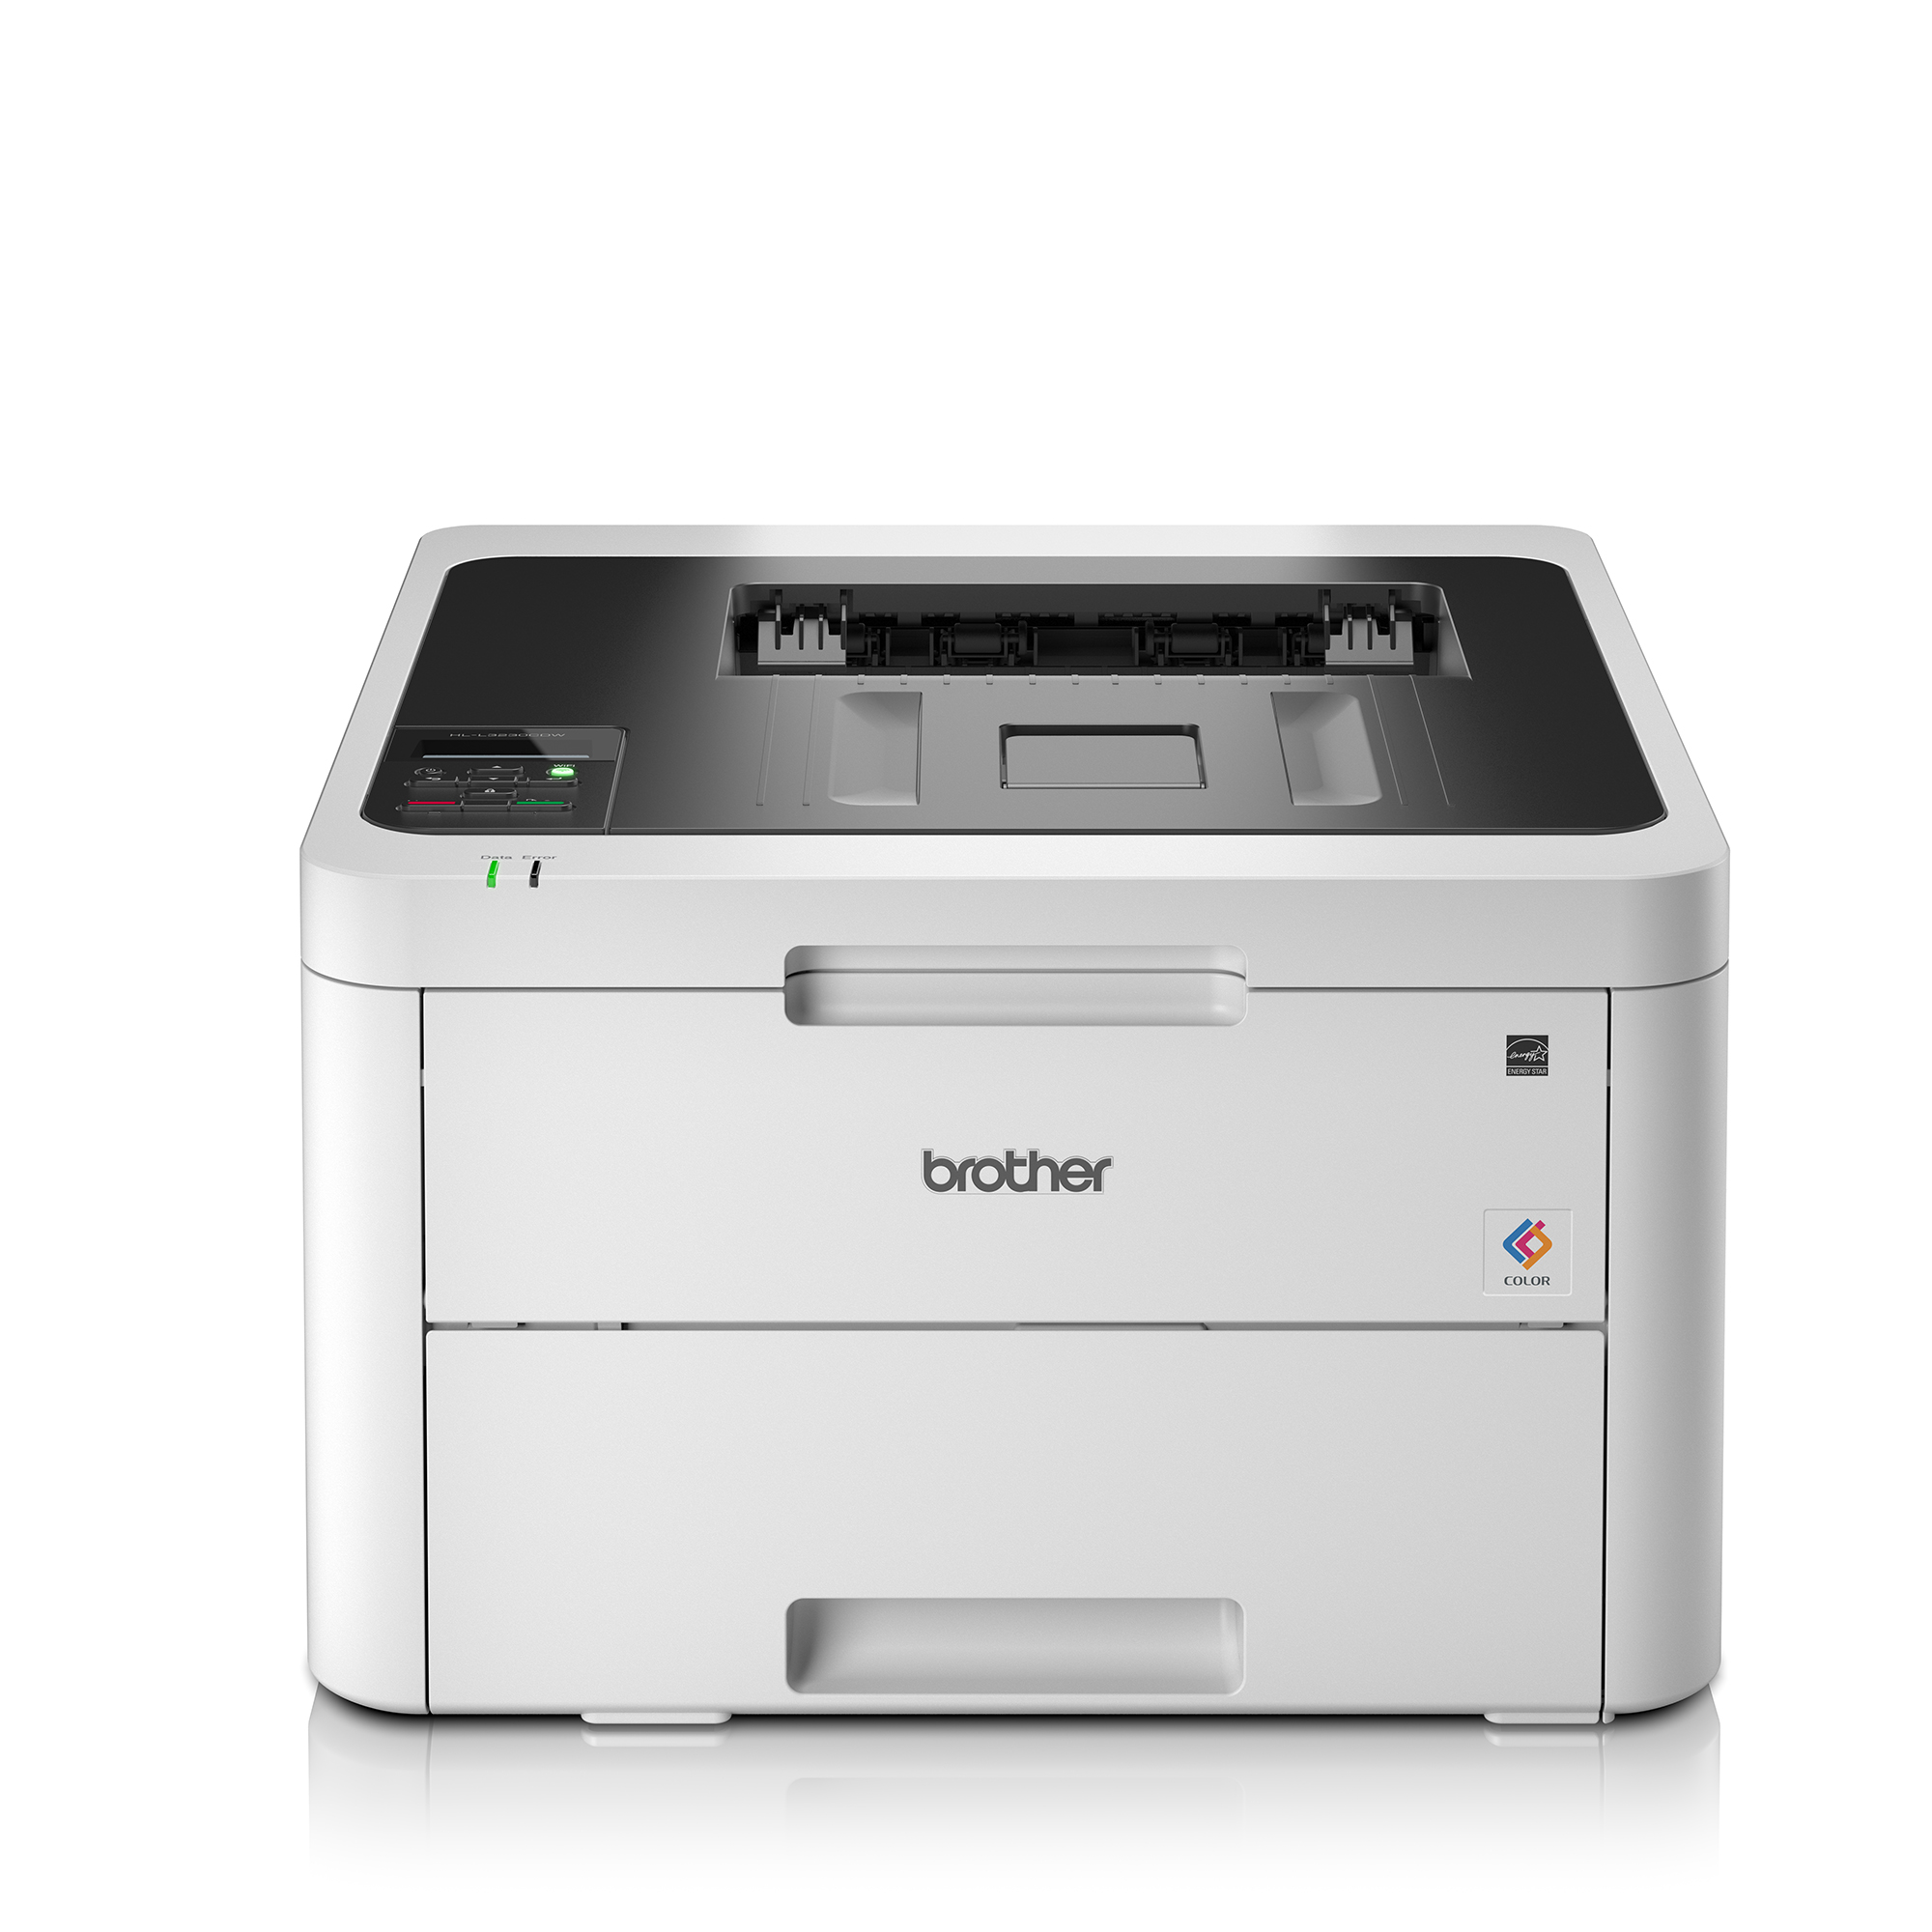 Brother HL-L3230CDW Laser Printer Wireless Colour LED Ref HL-L3230CDW